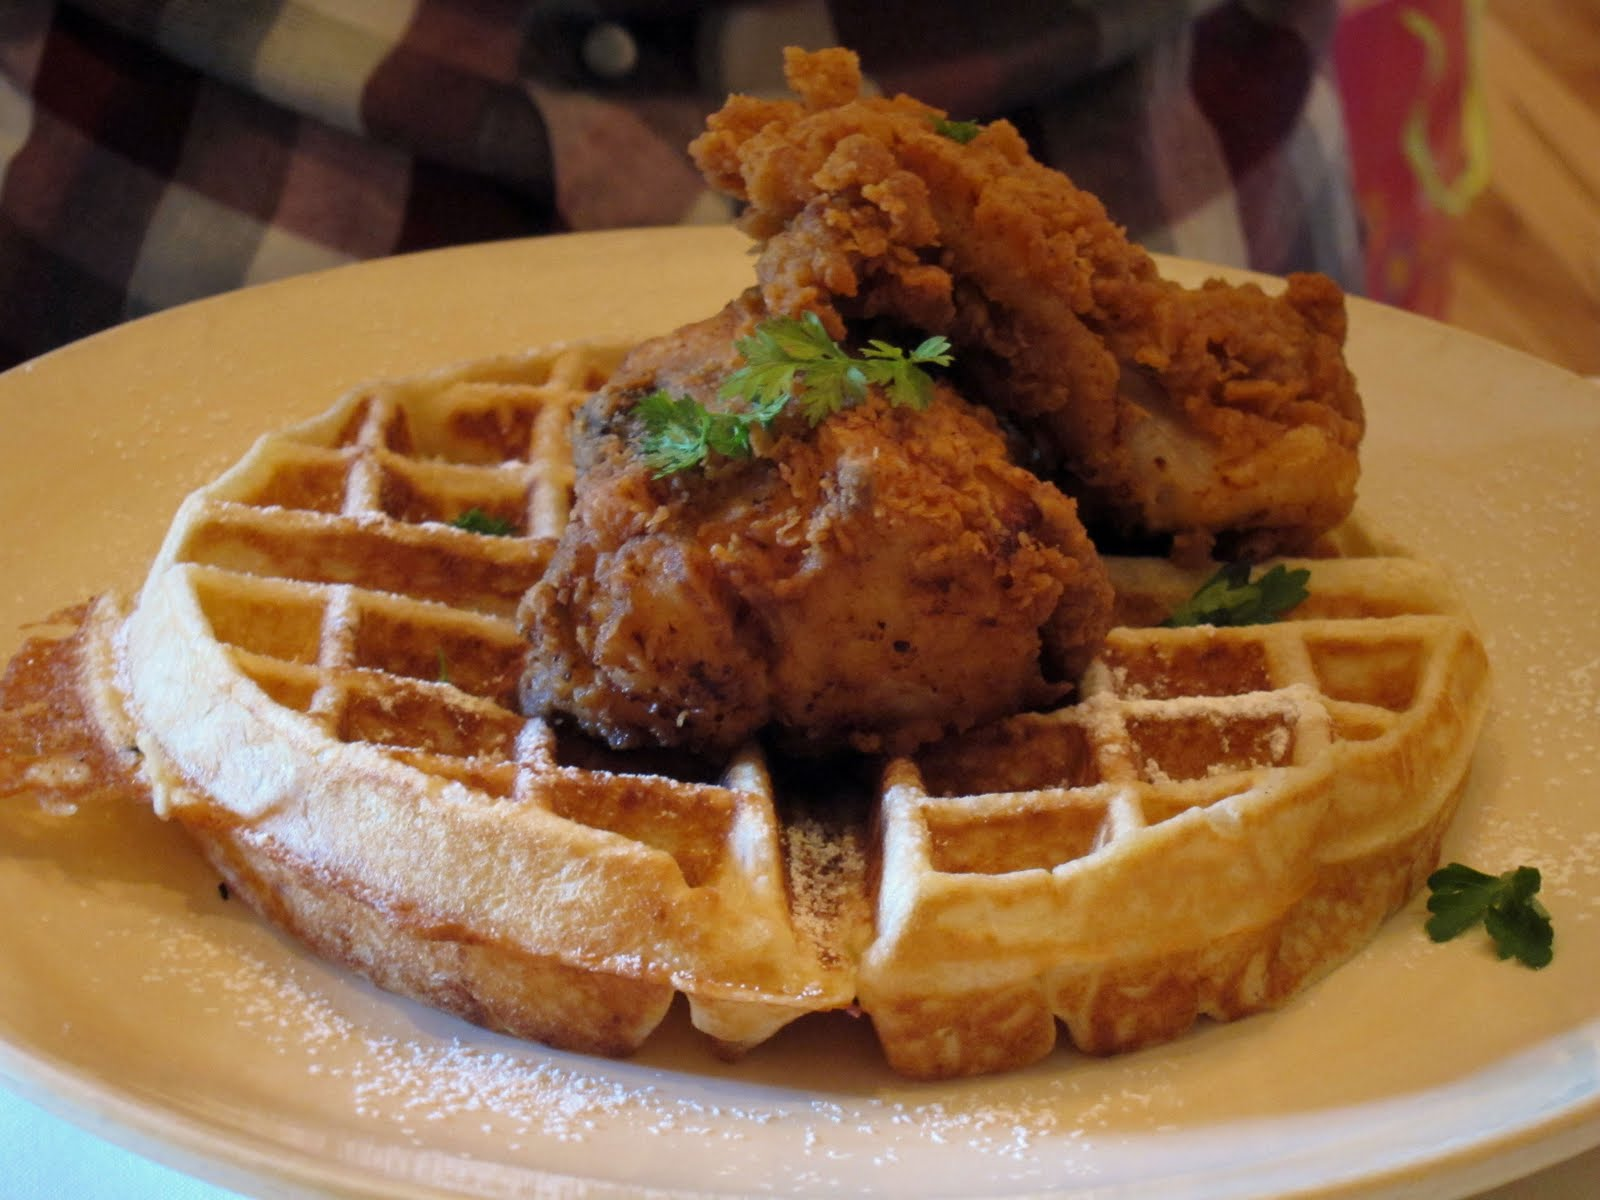 Near north chicago staycation guide chicken and waffles for Table 52 menu chicago